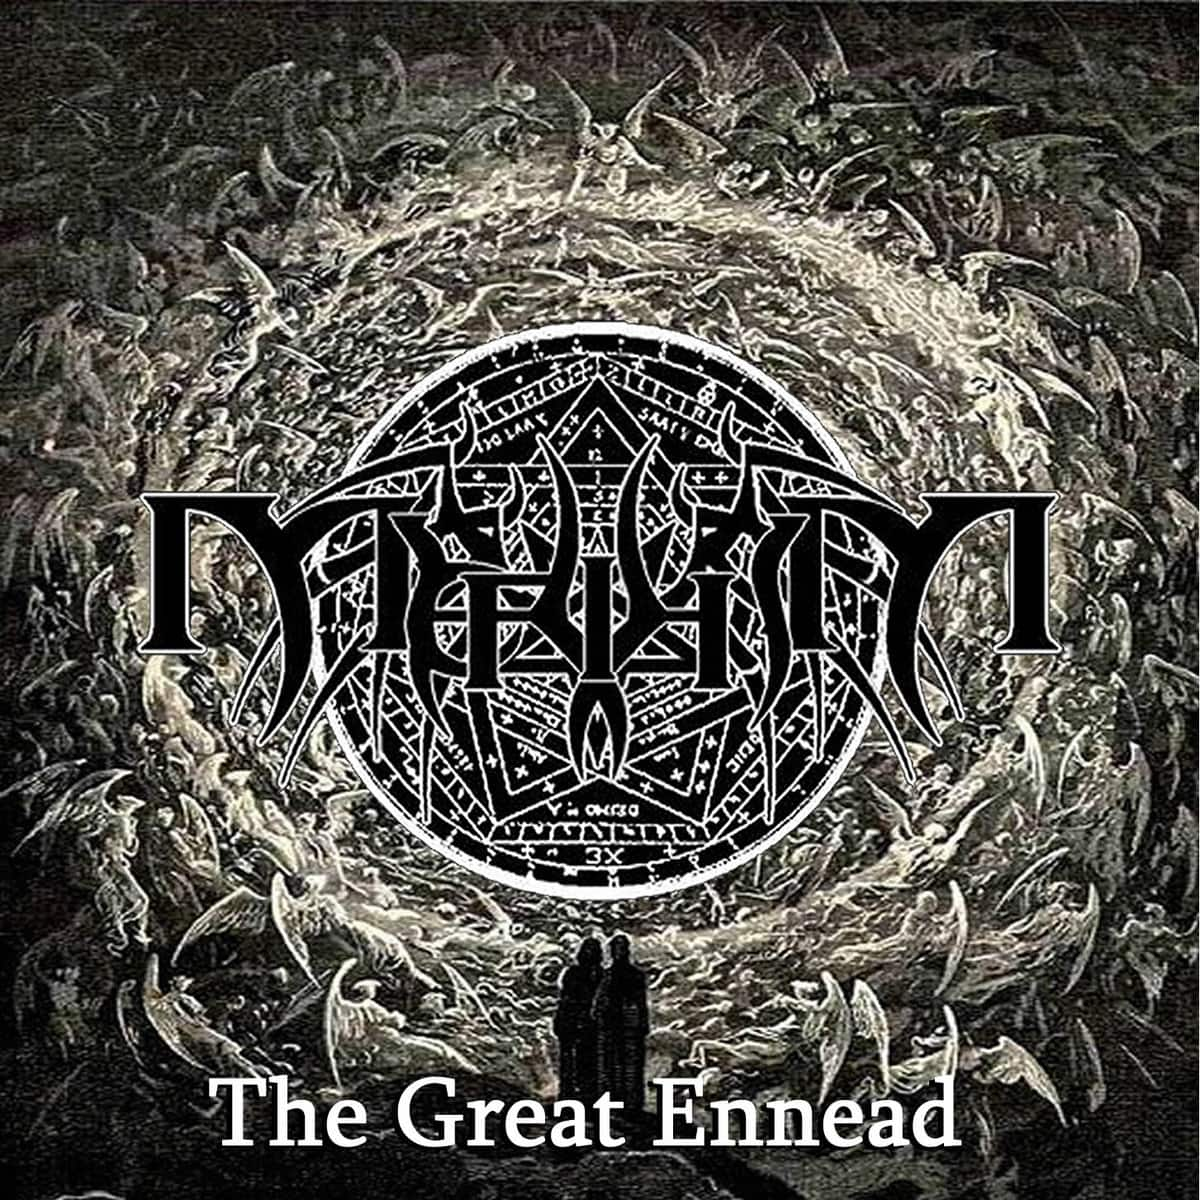 Merihim - The Great Ennead